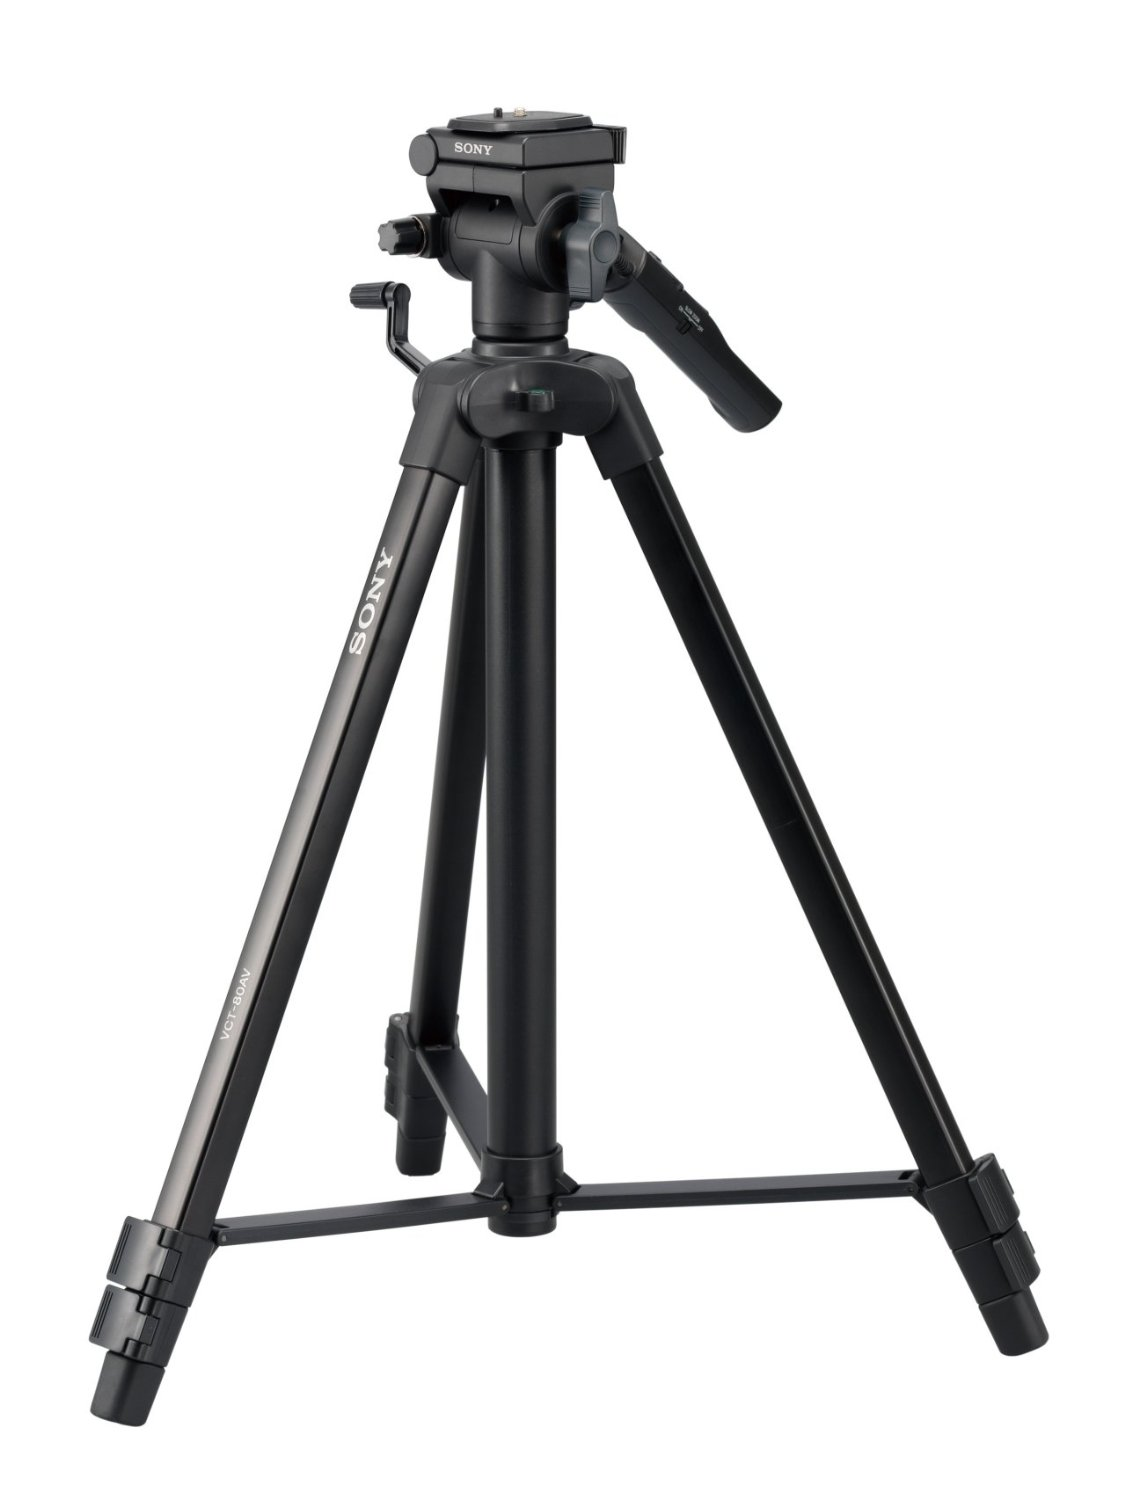 Buy Sony VCT-60AV Remote Control Tripod for use with